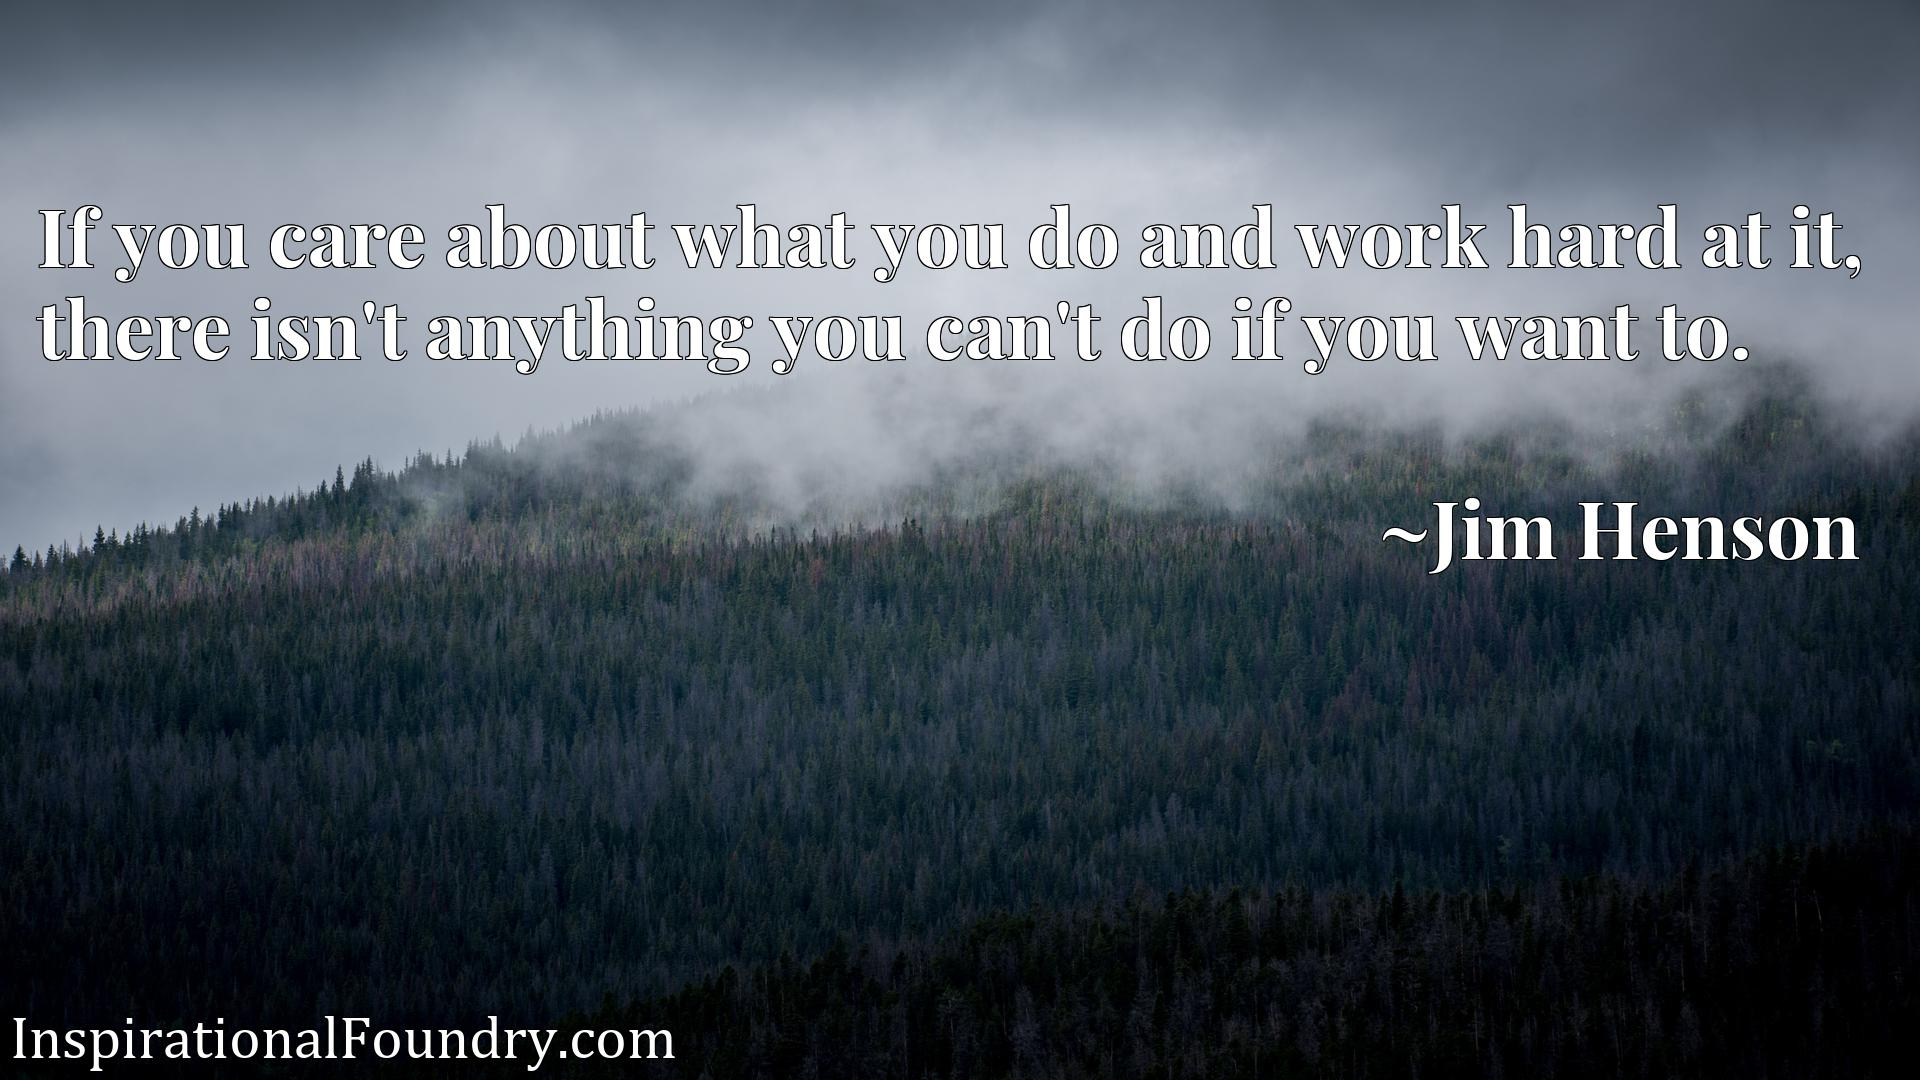 Quote Picture :If you care about what you do and work hard at it, there isn't anything you can't do if you want to.